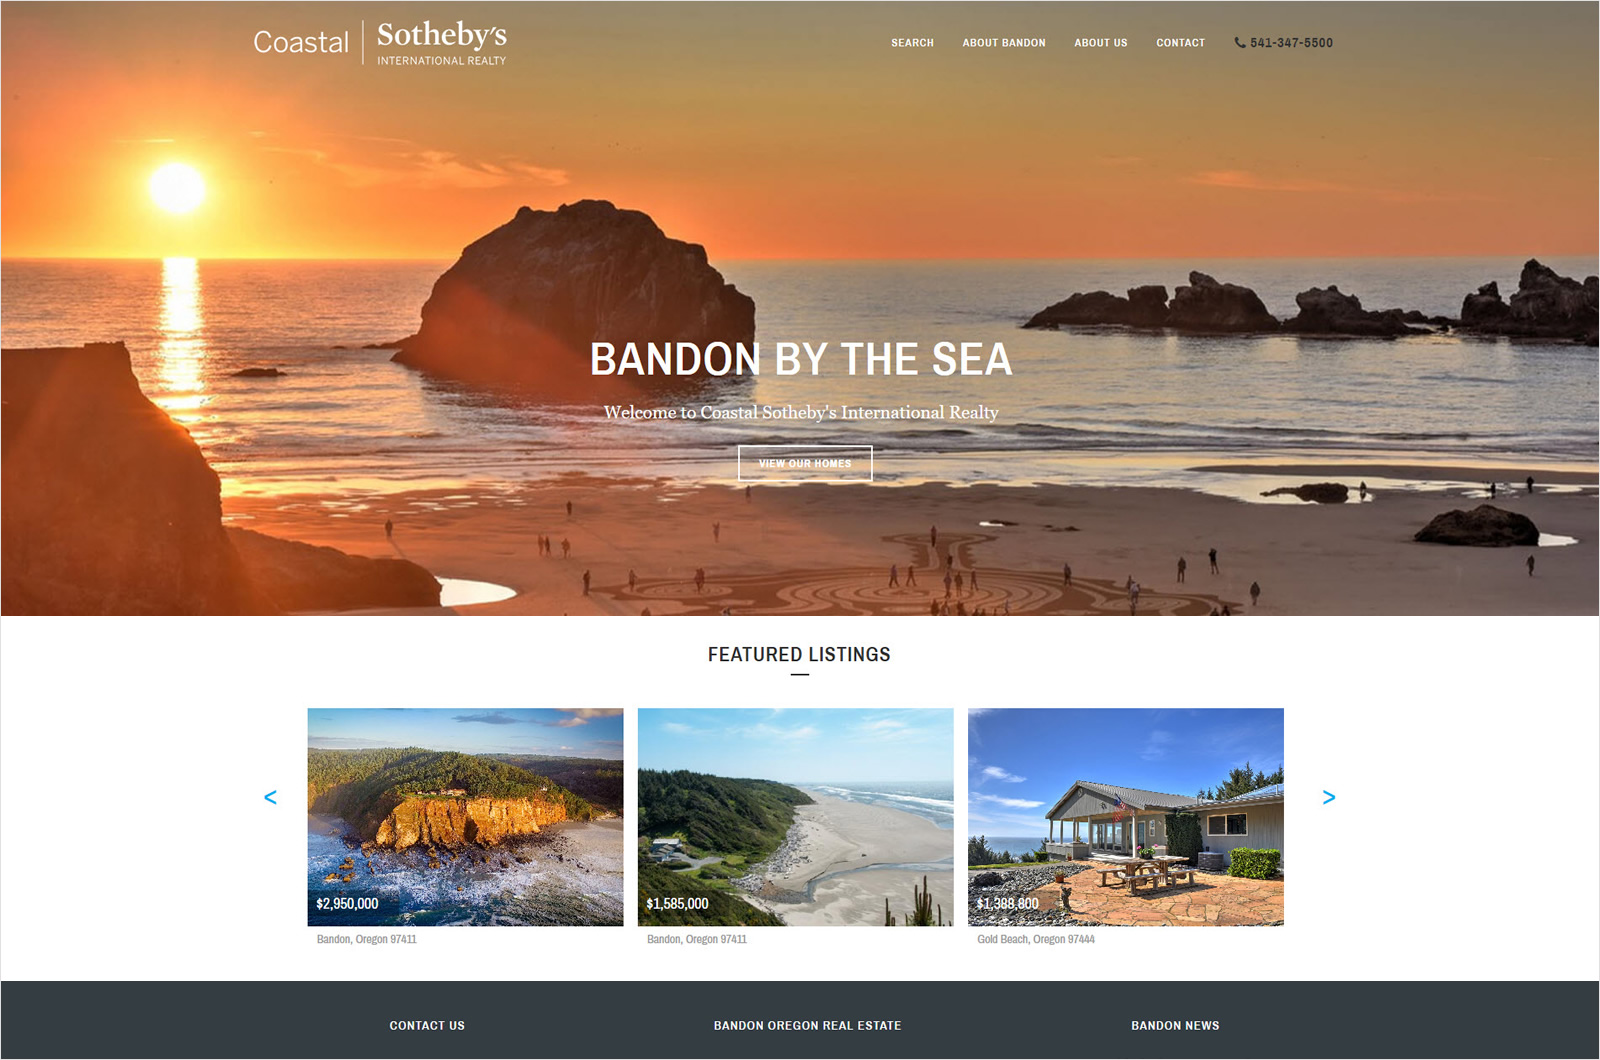 Coastal Sotheby's International Realty Bandon Property